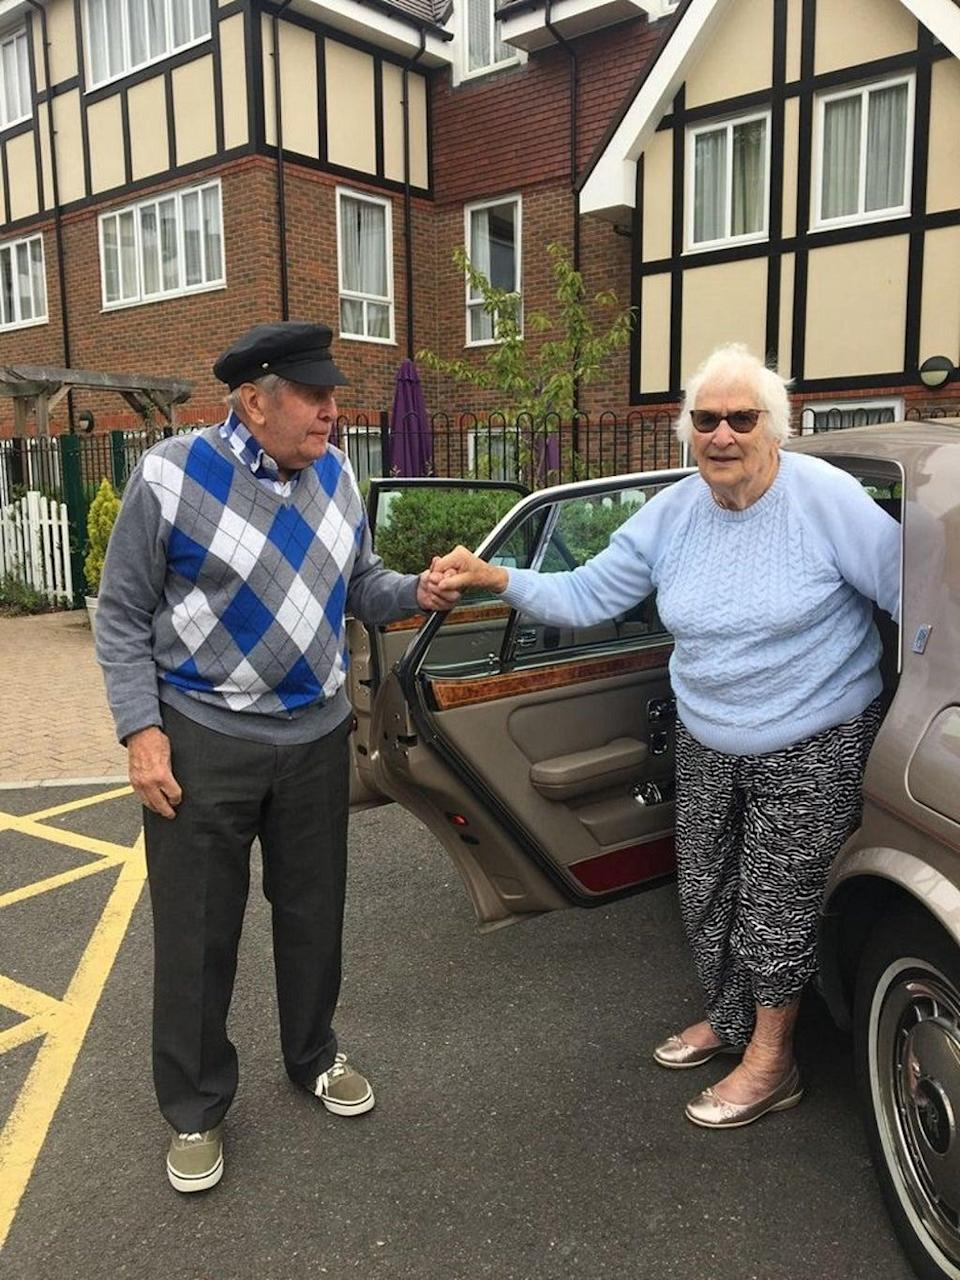 Alec Goy helping fellow resident Eve out of the Rolls Royce (Care UK's Weald Heights/PA).